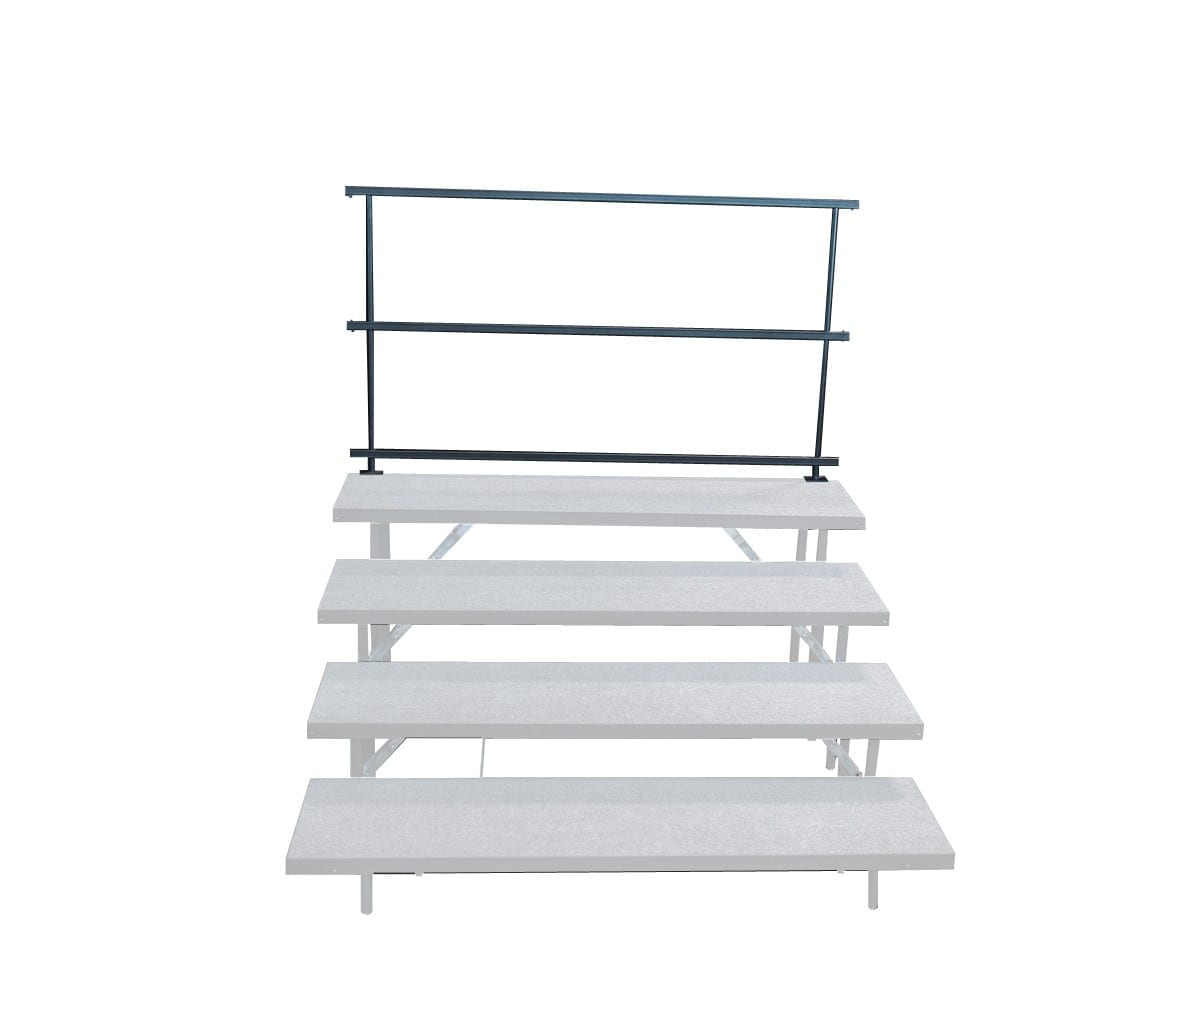 Back guard rails for standing choral risers